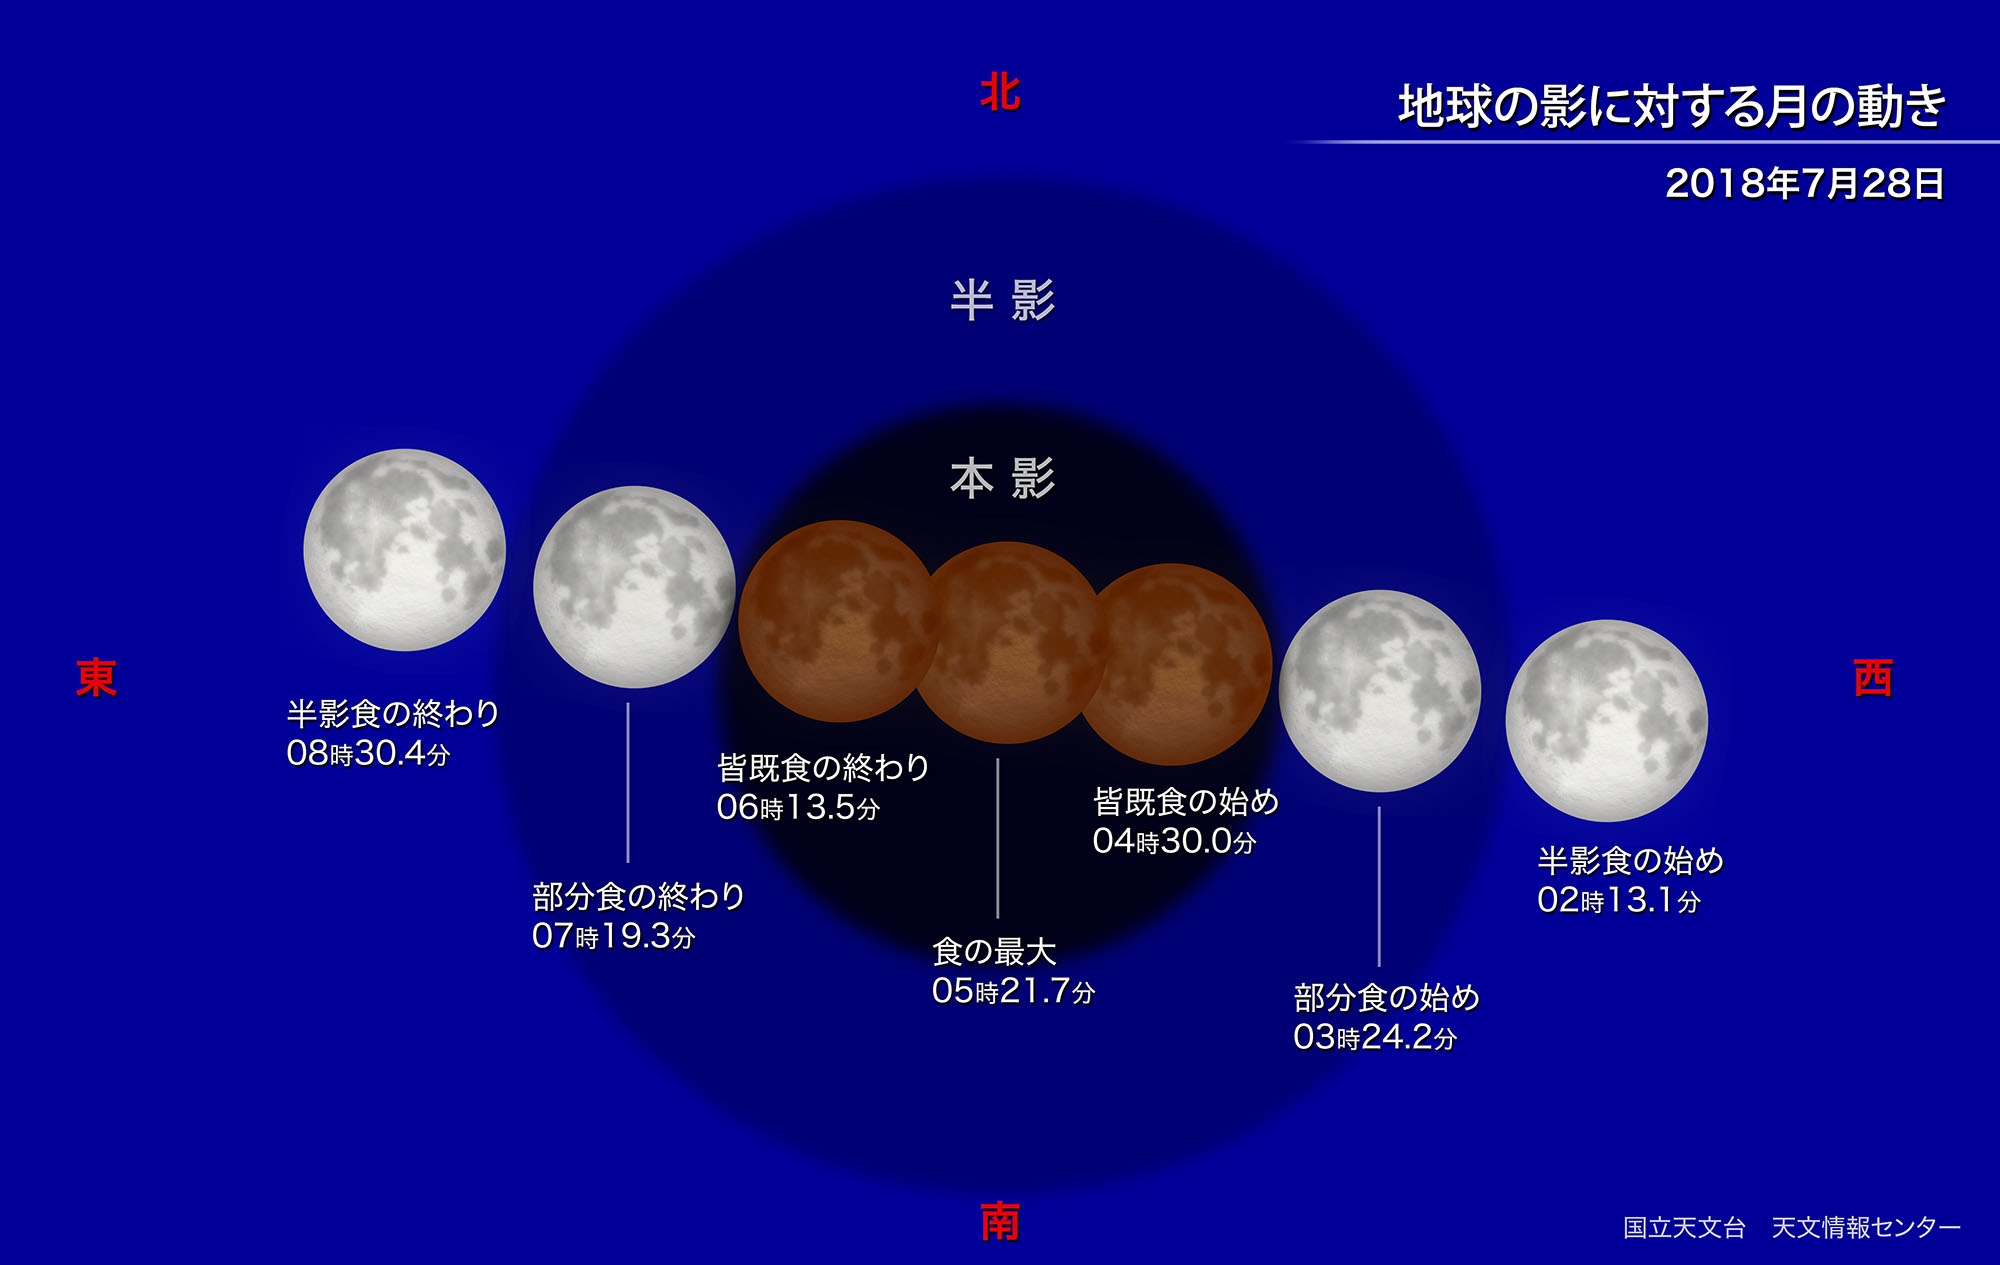 https://www.nao.ac.jp/contents/astro/feature/lunar-eclipse20180728/move-m.jpg